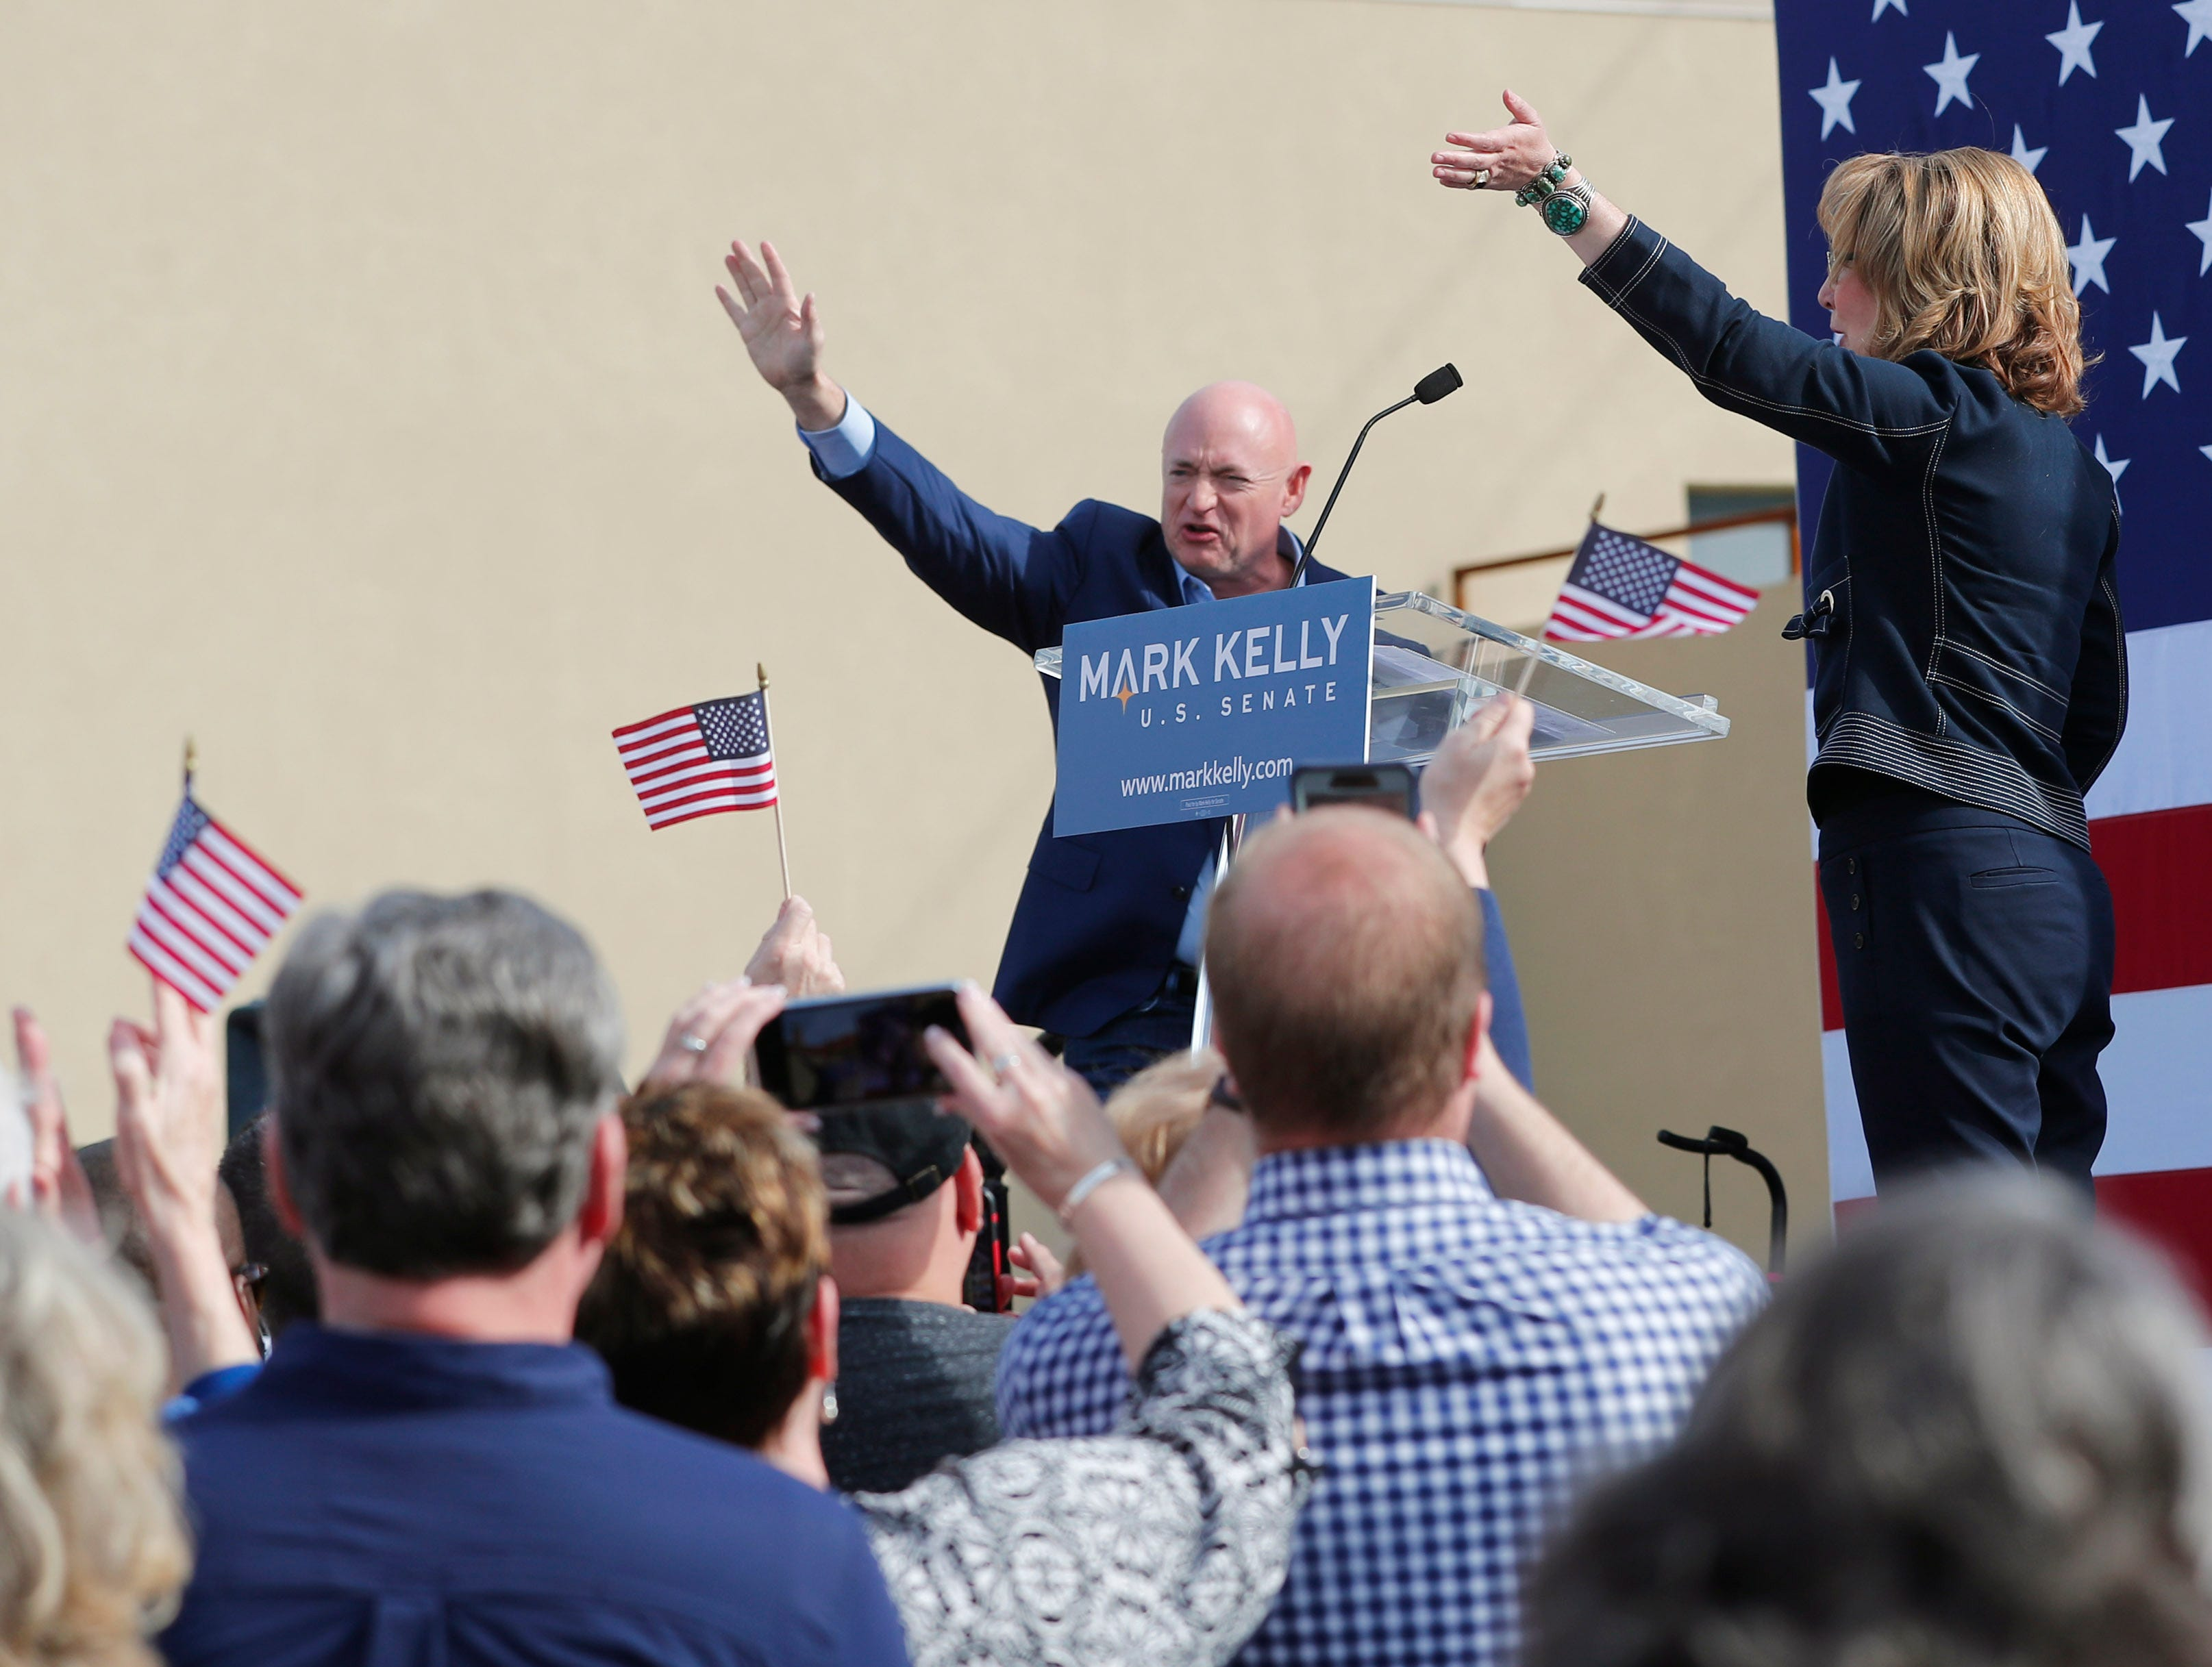 Mark Kelly is introduced by his wife, Gabrielle Giffords, during a Senate launch event in Phoenix, Ariz. on Feb. 24, 2019. Kelly is running as a Democrat for the late Sen. John McCain's seat.